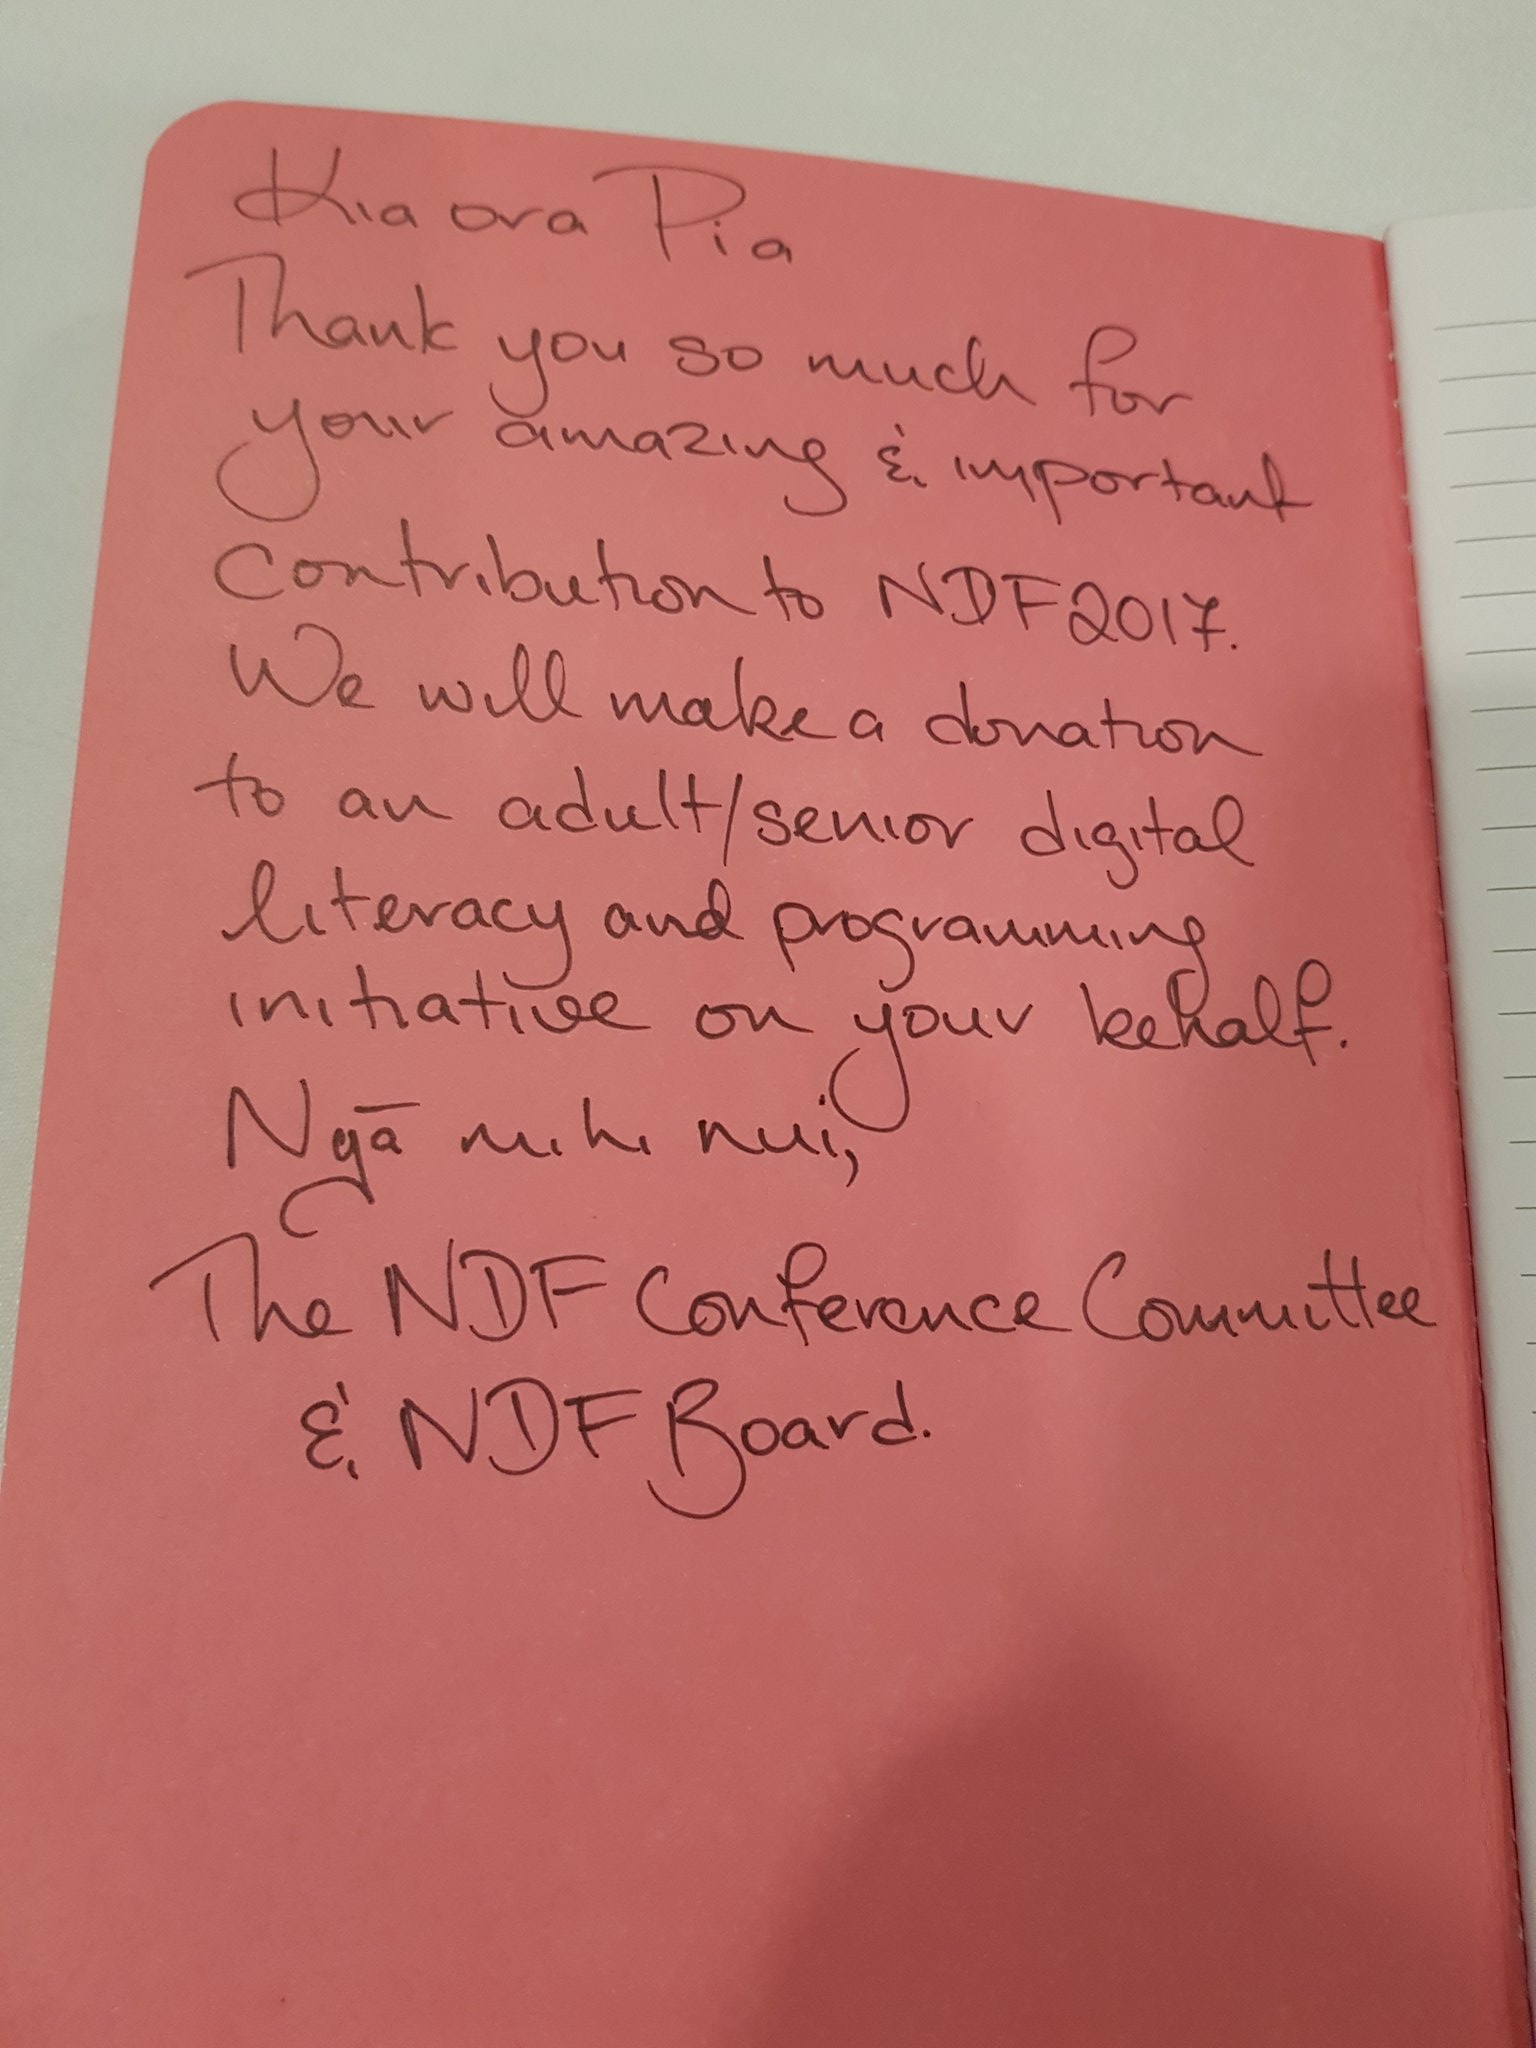 This is the best speaker gift I've ever been given. I hope all conferences consider this approach. It would really help people :) Thank you #ndfnz https://t.co/6wTb64kcWb